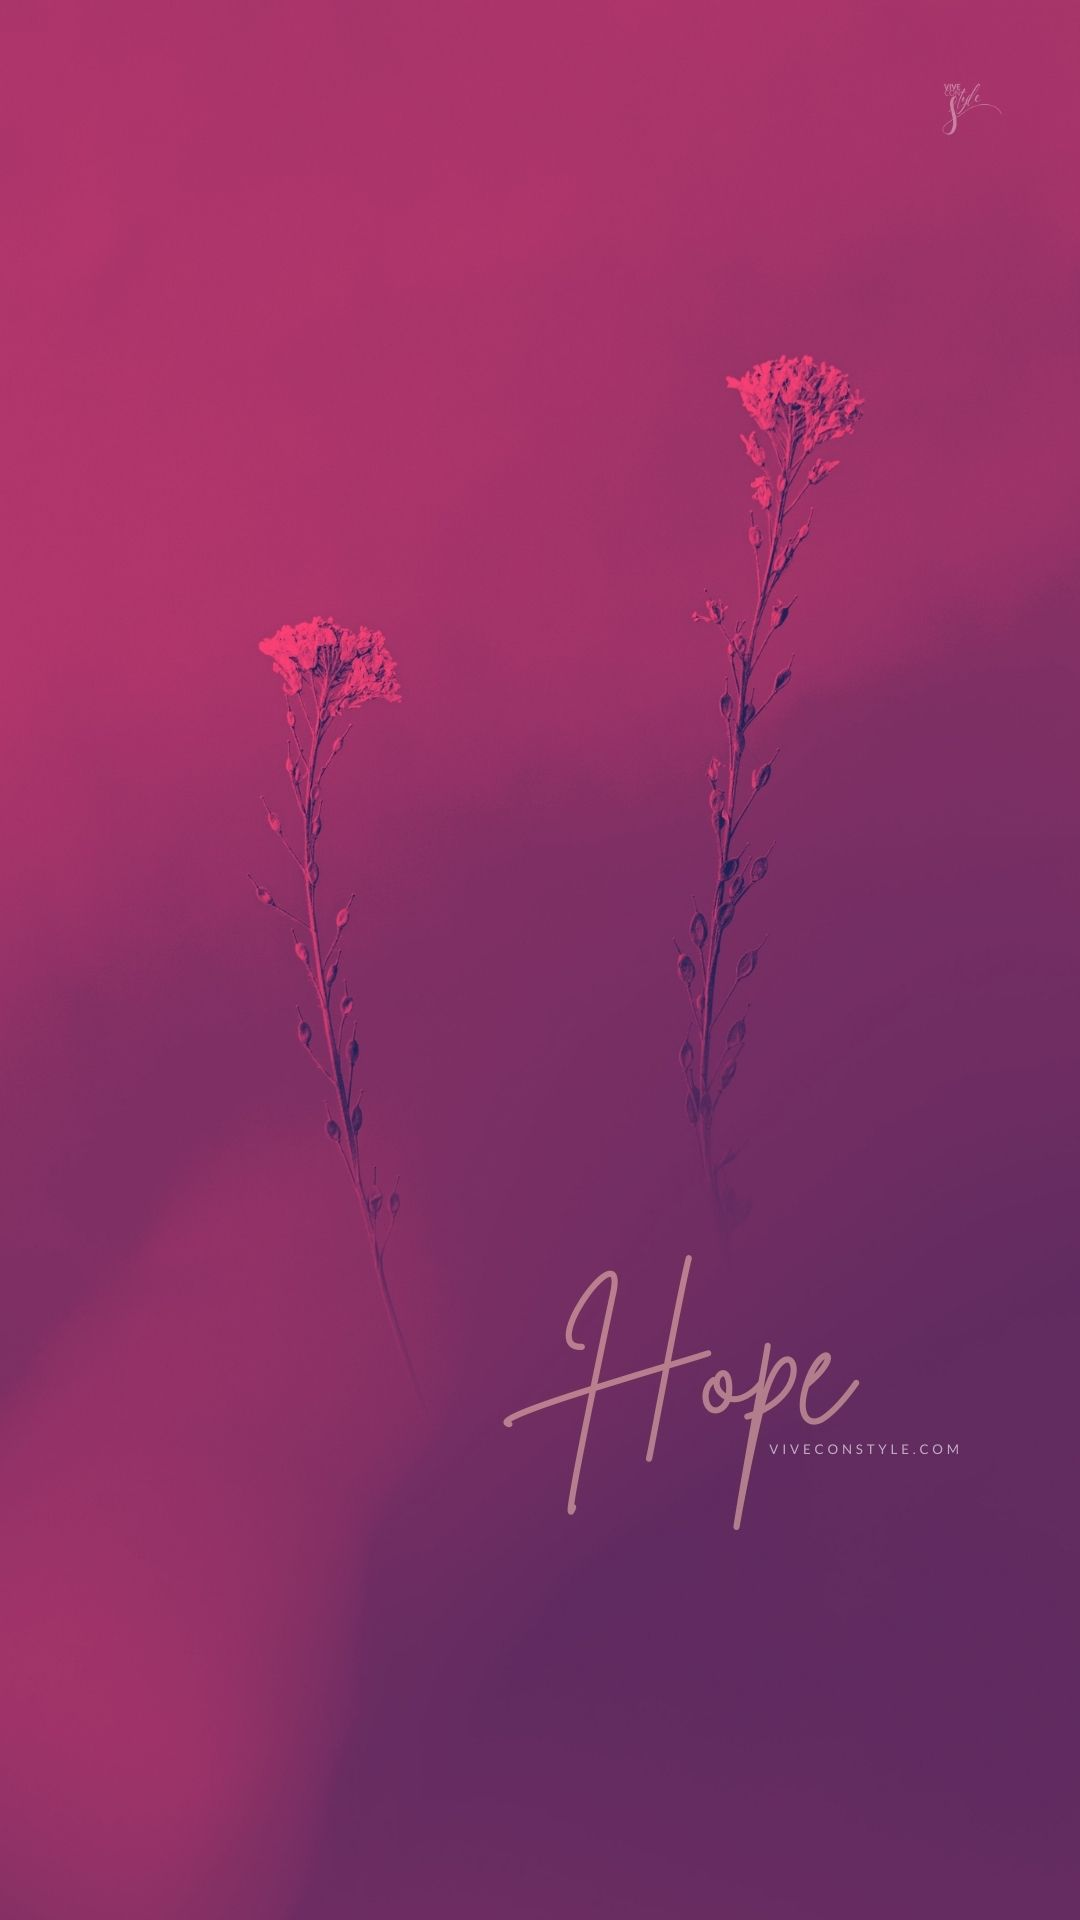 Hope quote mobile wallpaper